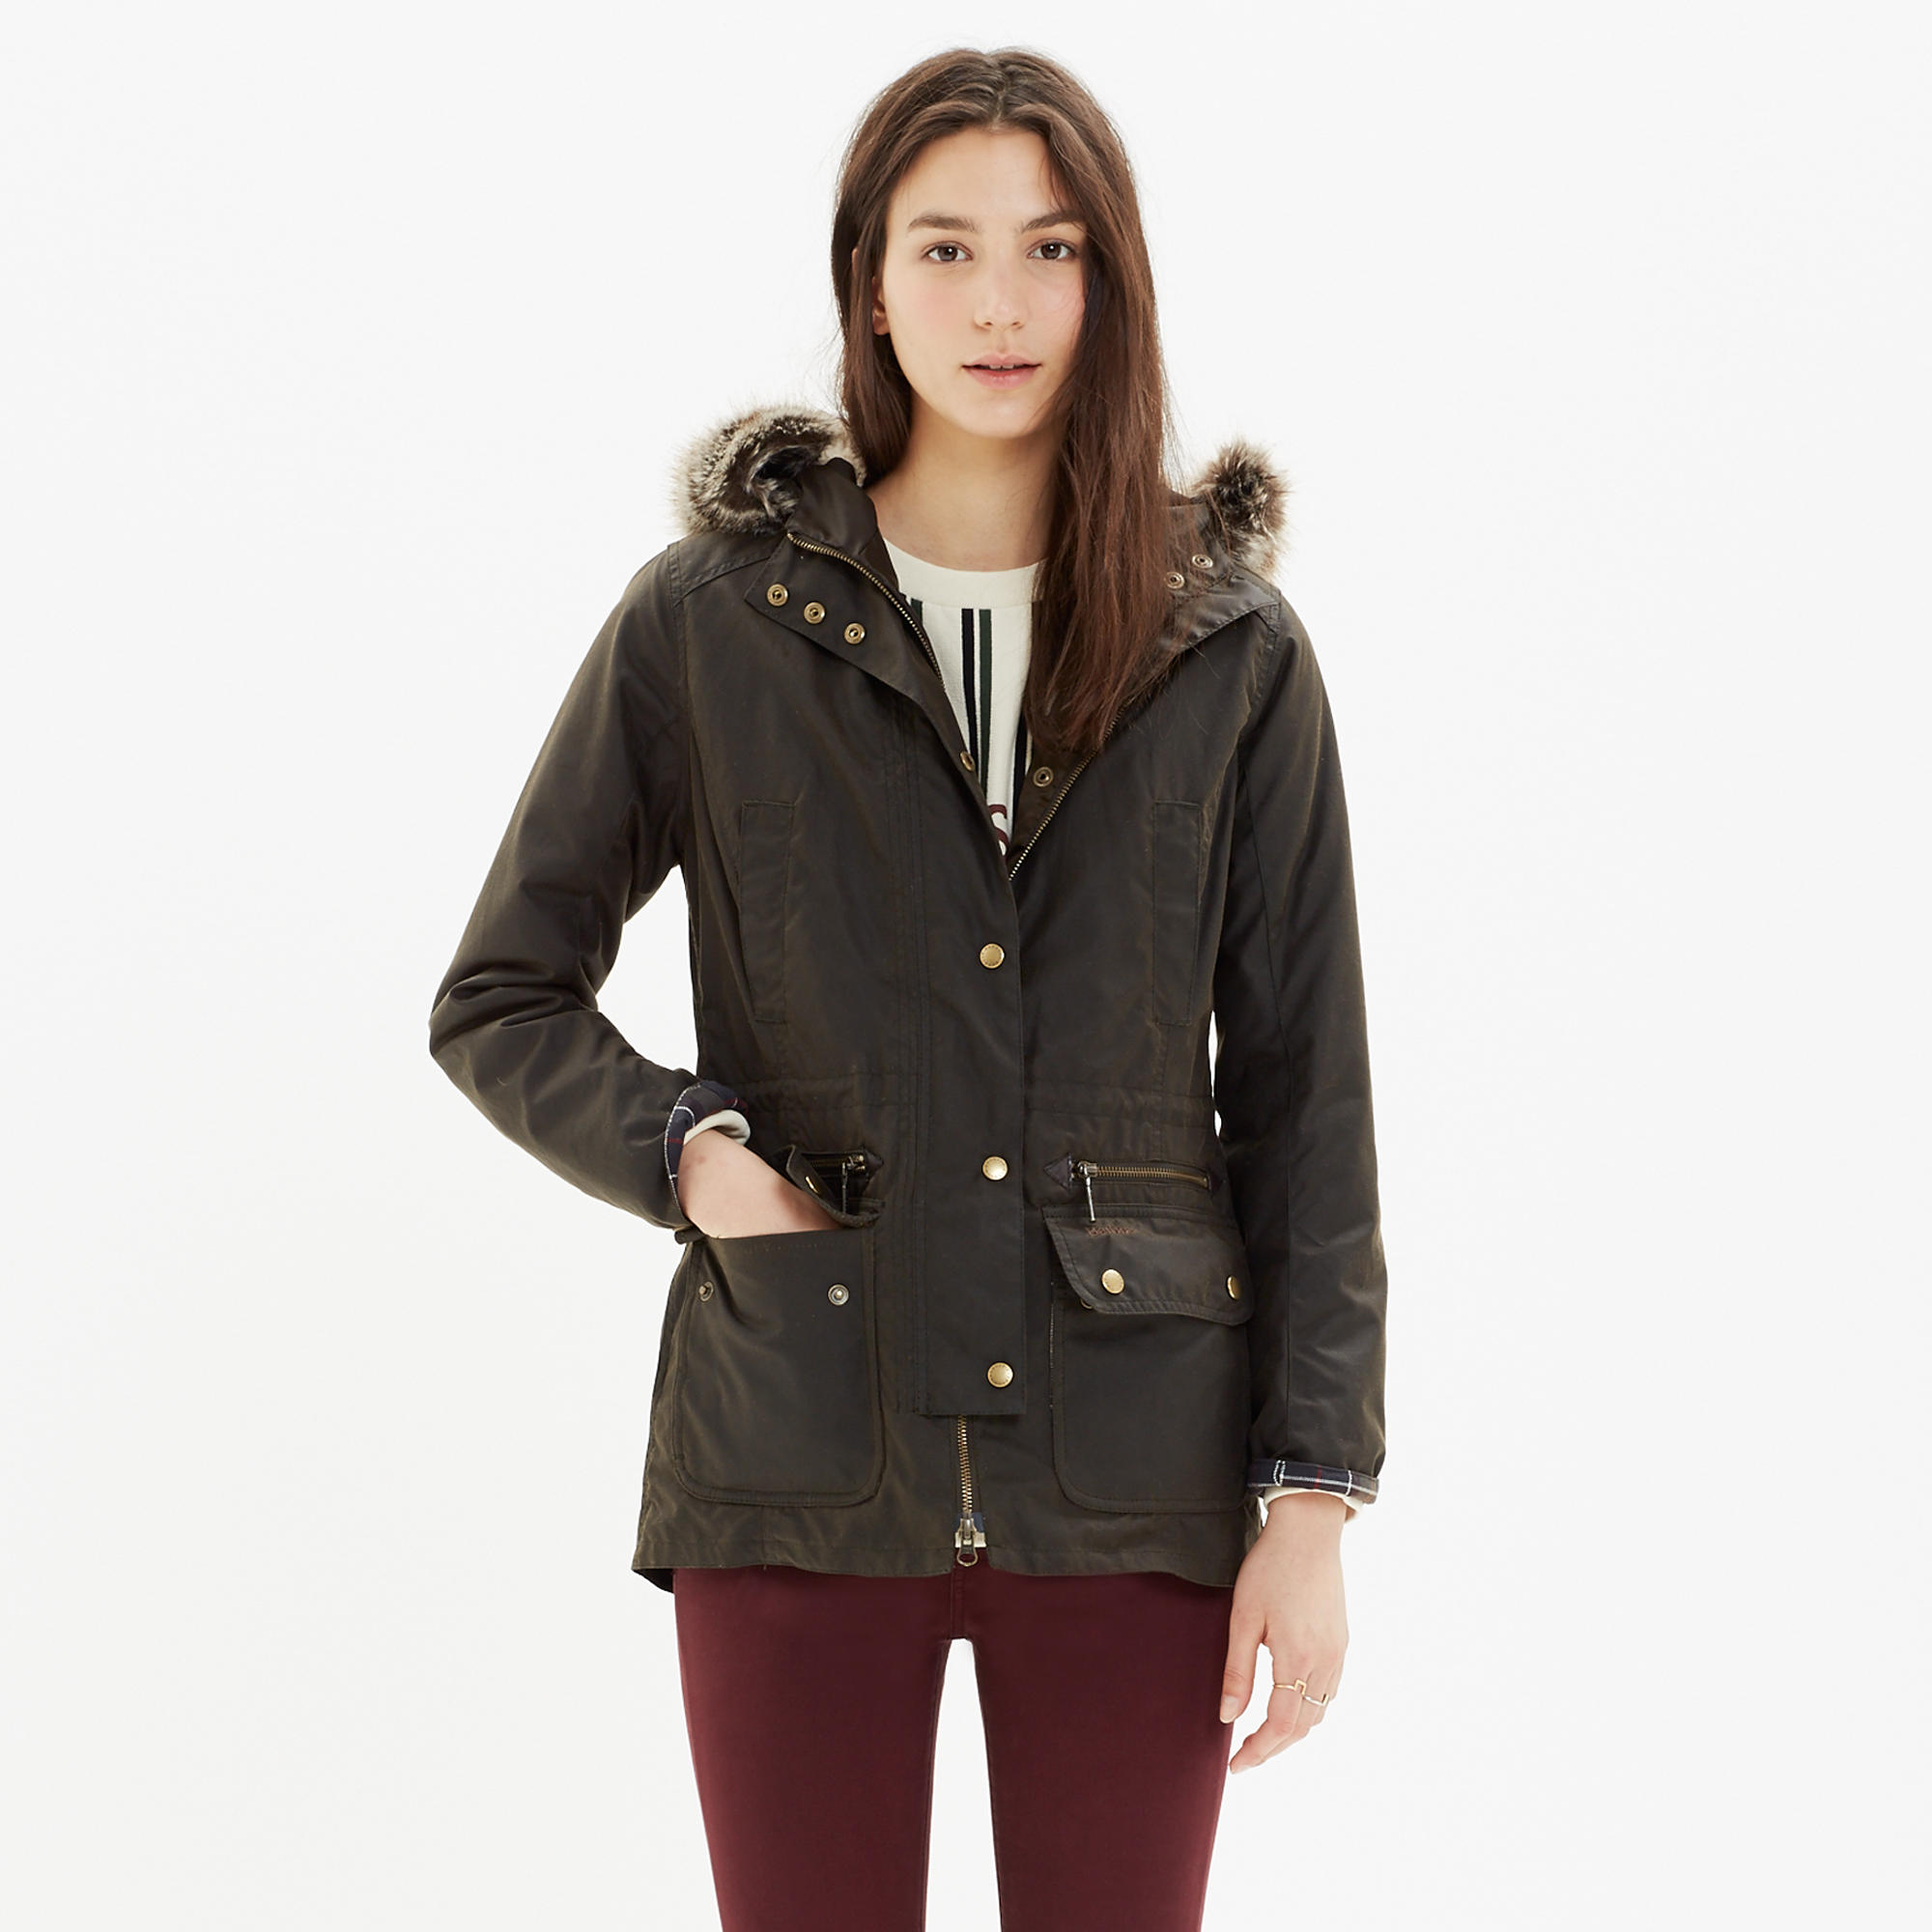 Barbour 'kelsall' woman waxed jacket